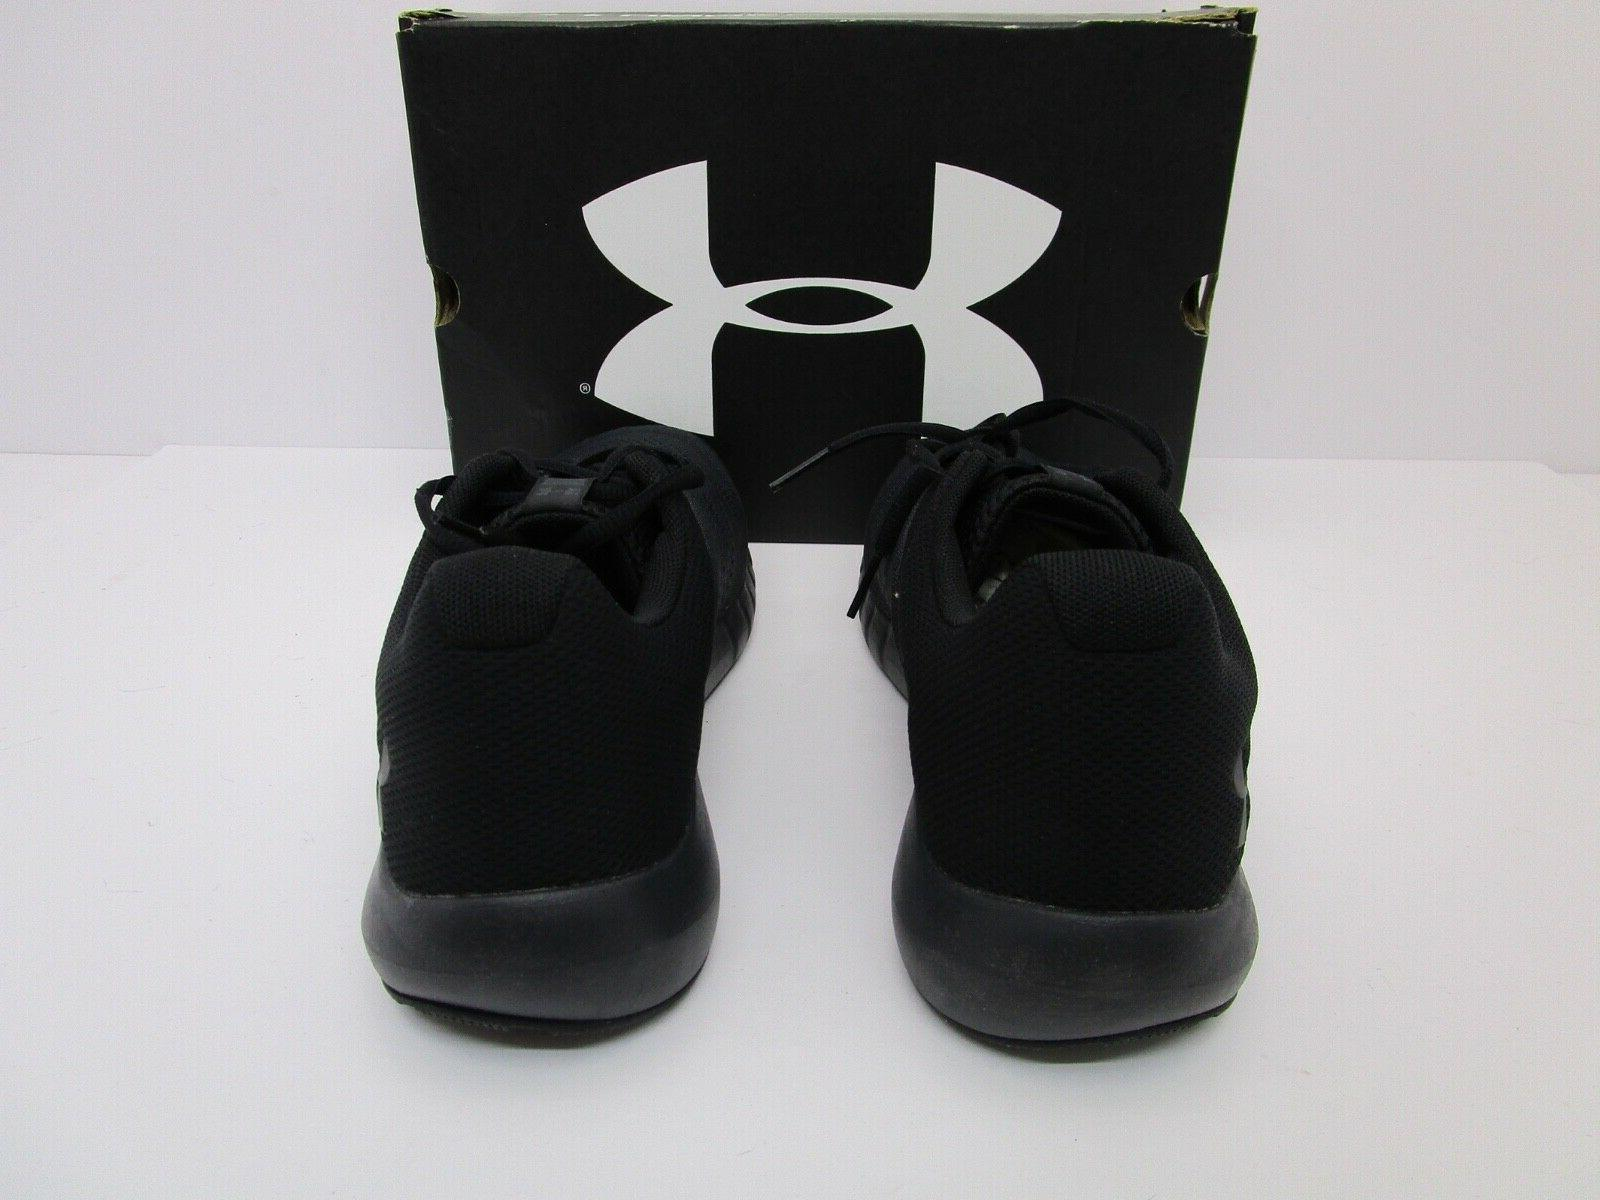 Under Armour Micro G Shoes Size 10